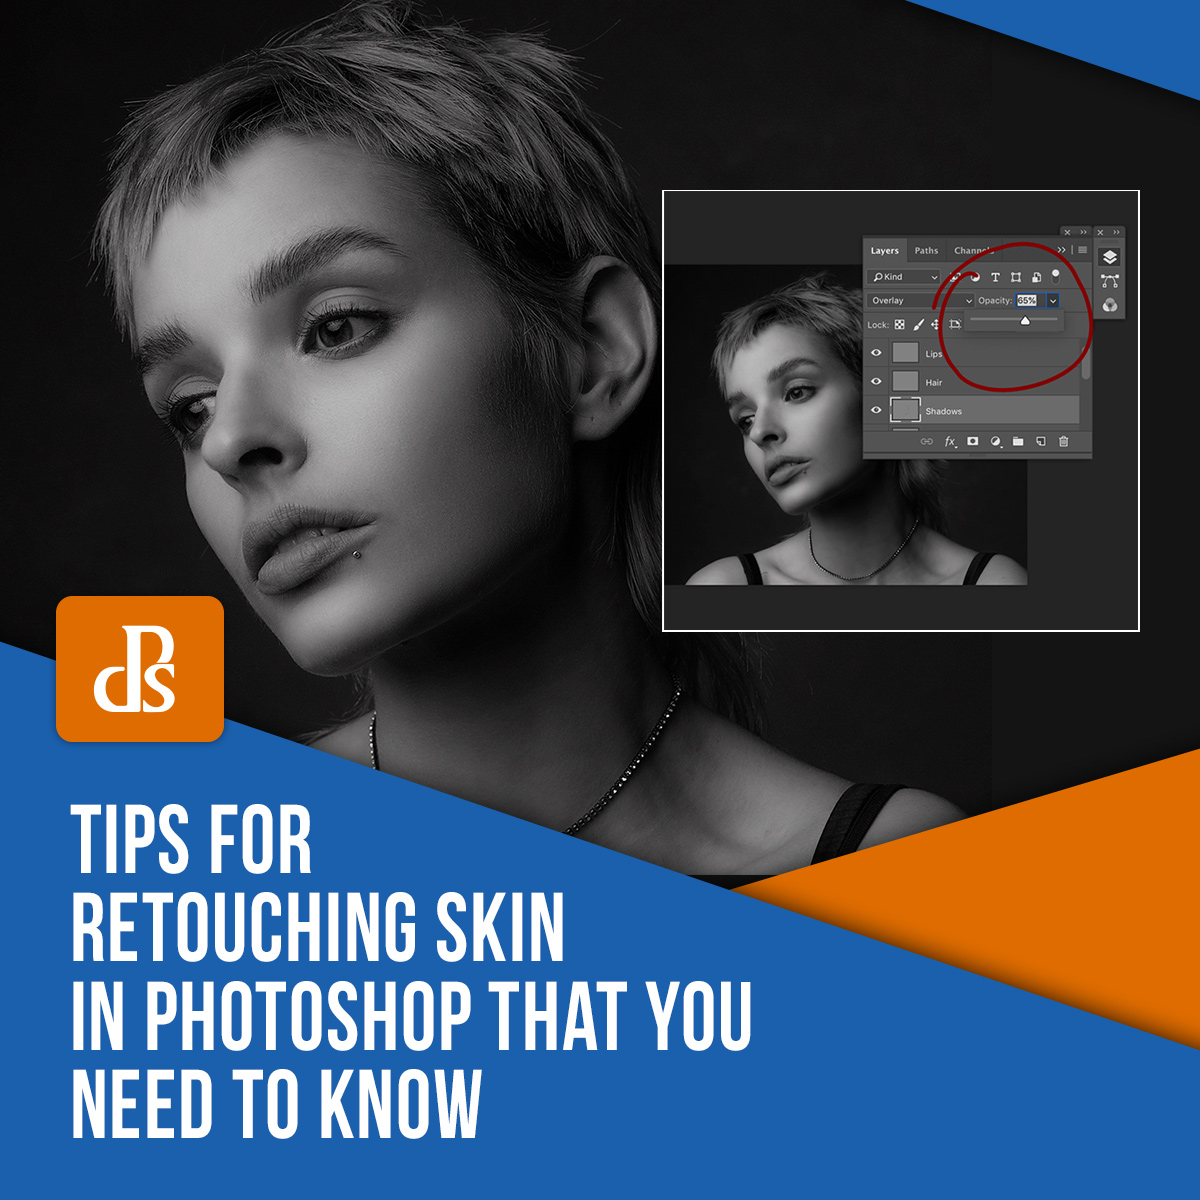 Tips for Retouching Skin in Photoshop That You Need to Know